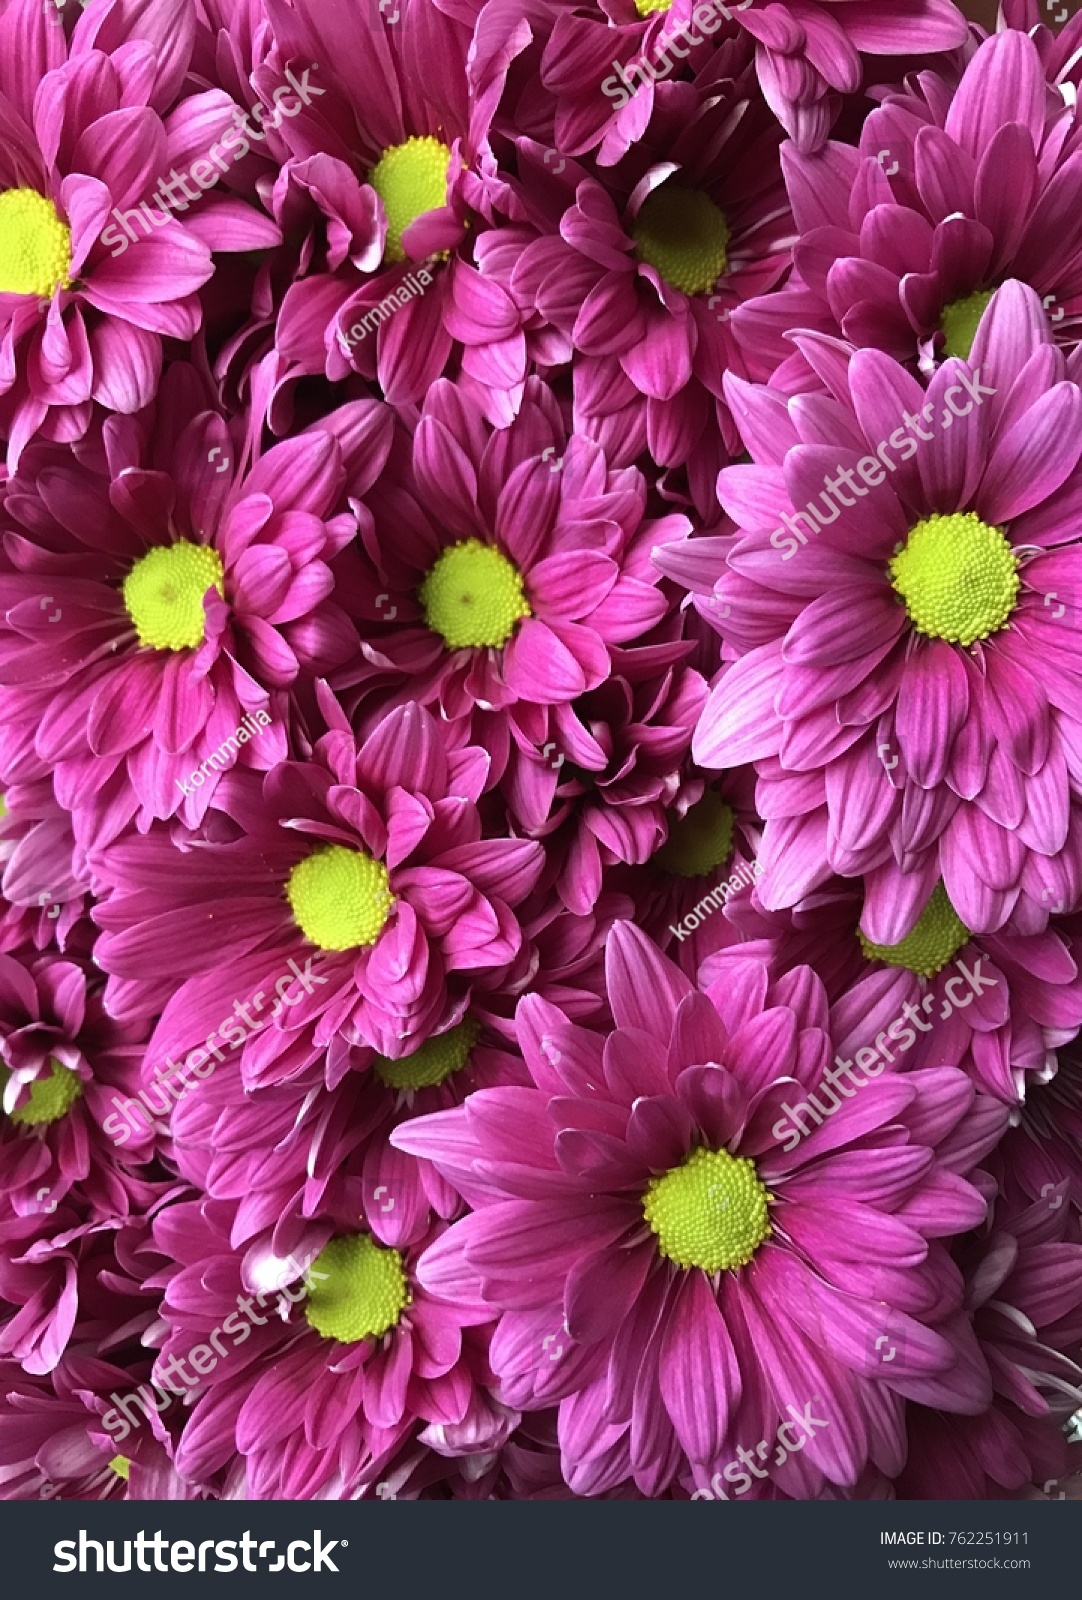 Chrysanthemums Flower Flower Autumn Pink Flower Stock Photo Edit